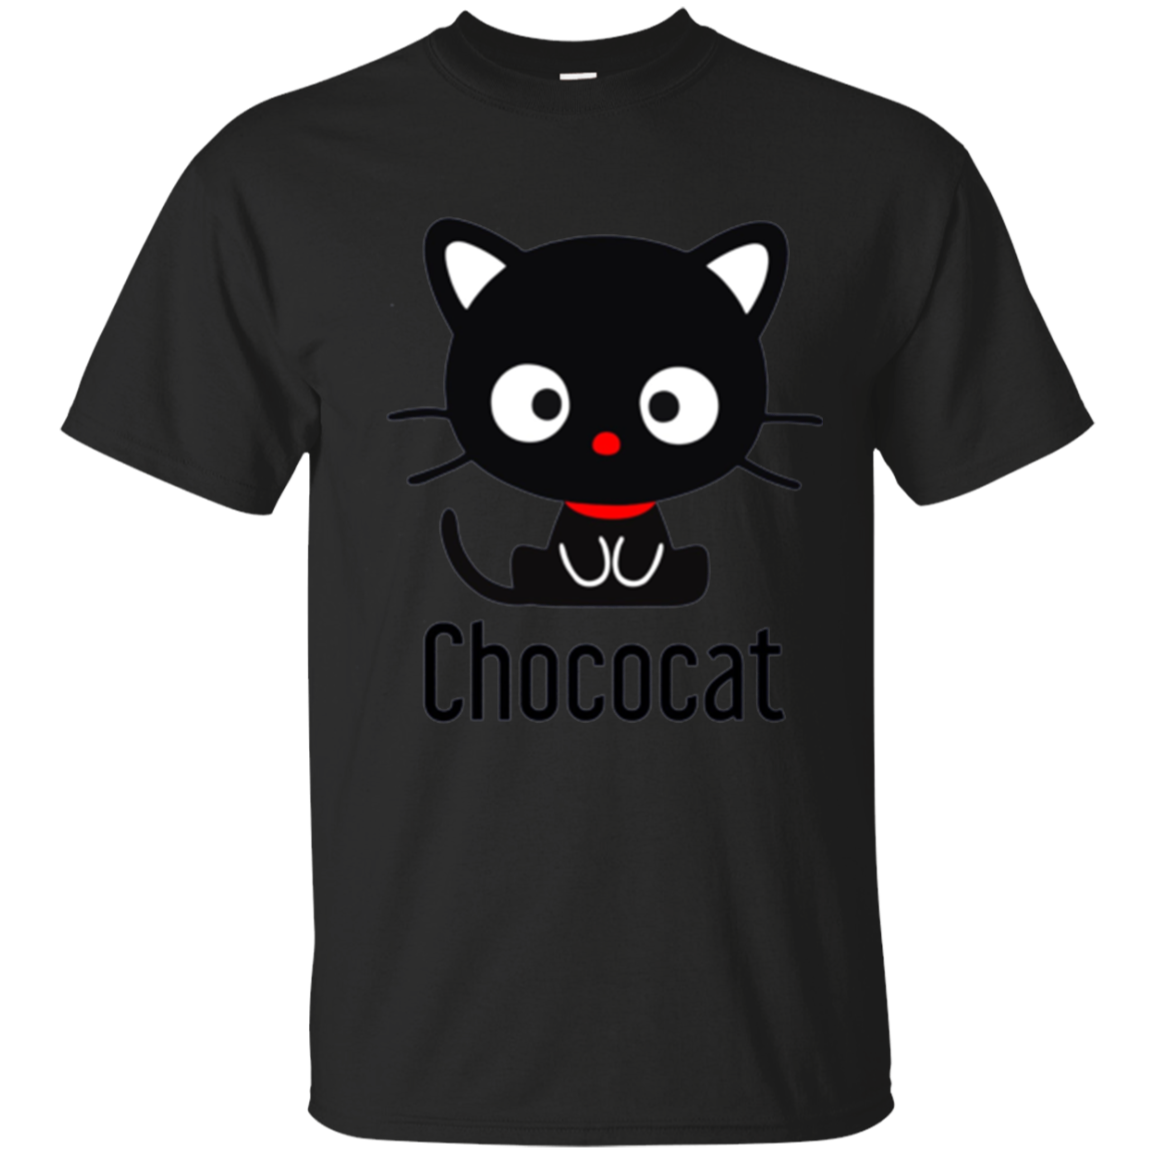 Funny Chococat T Shirt - Special T Shirt For Cat Lovers